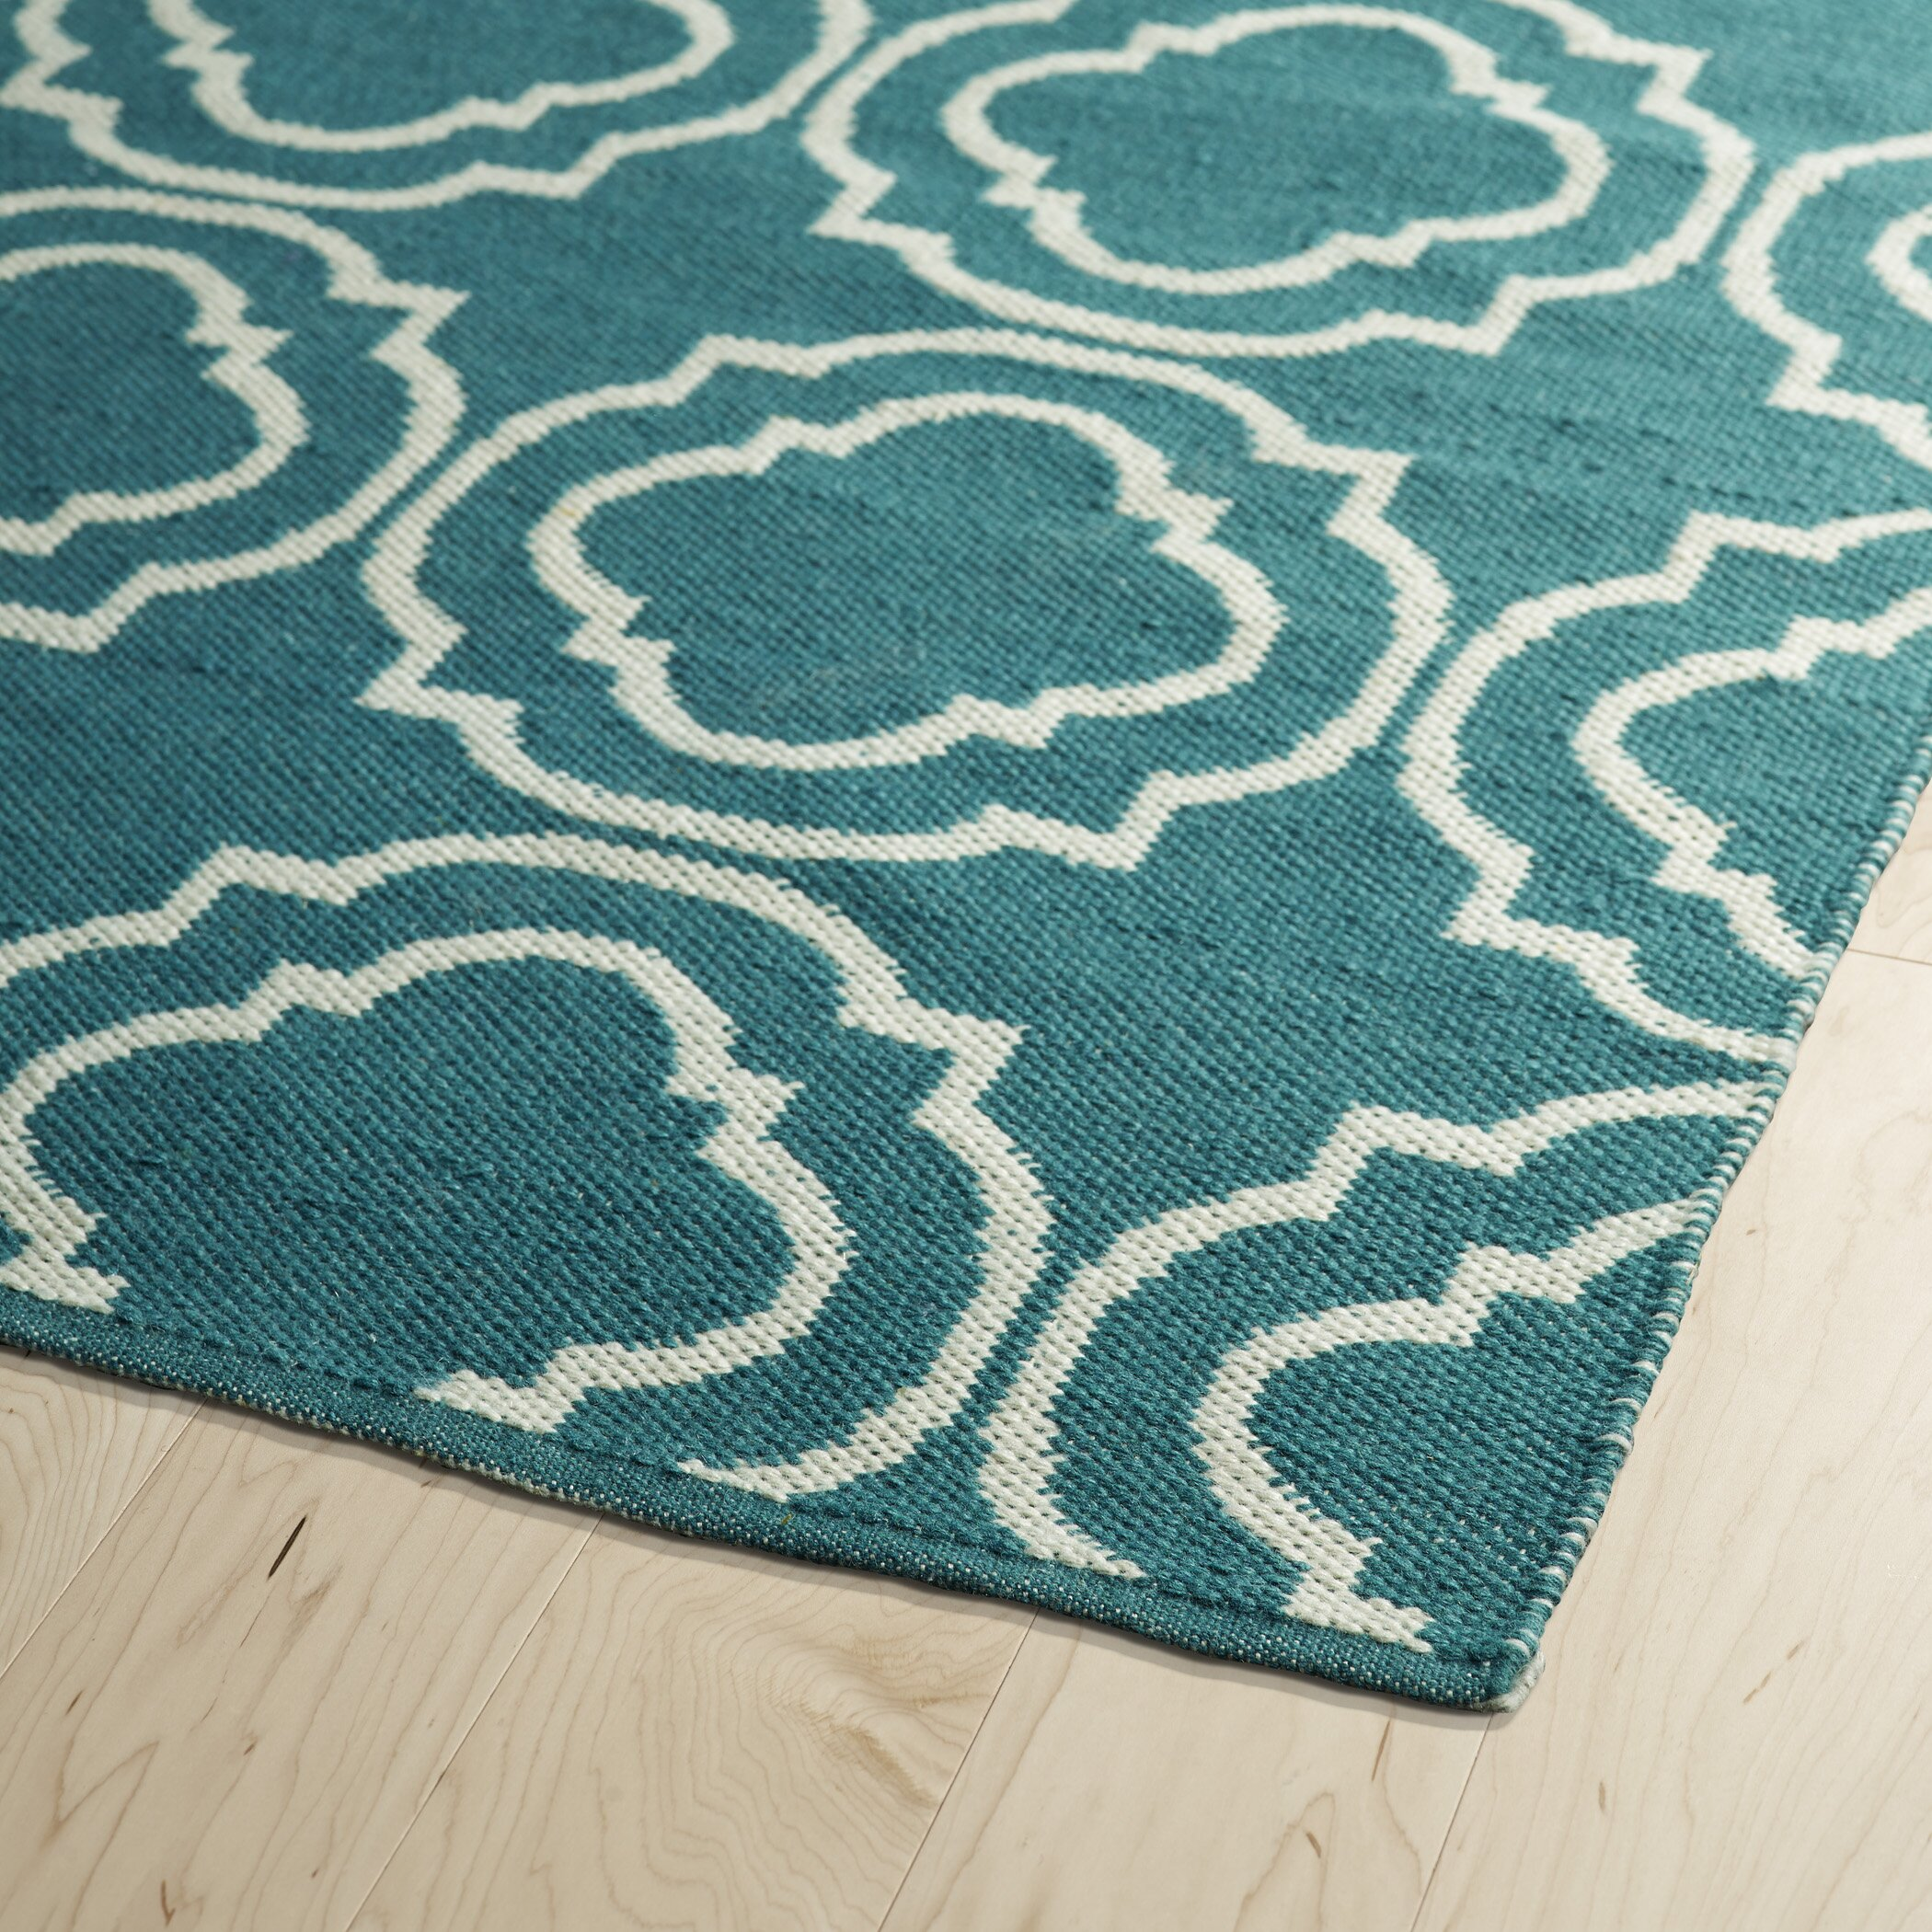 Kaleen Brisa Teal & Cream Indoor/Outdoor Area Rug